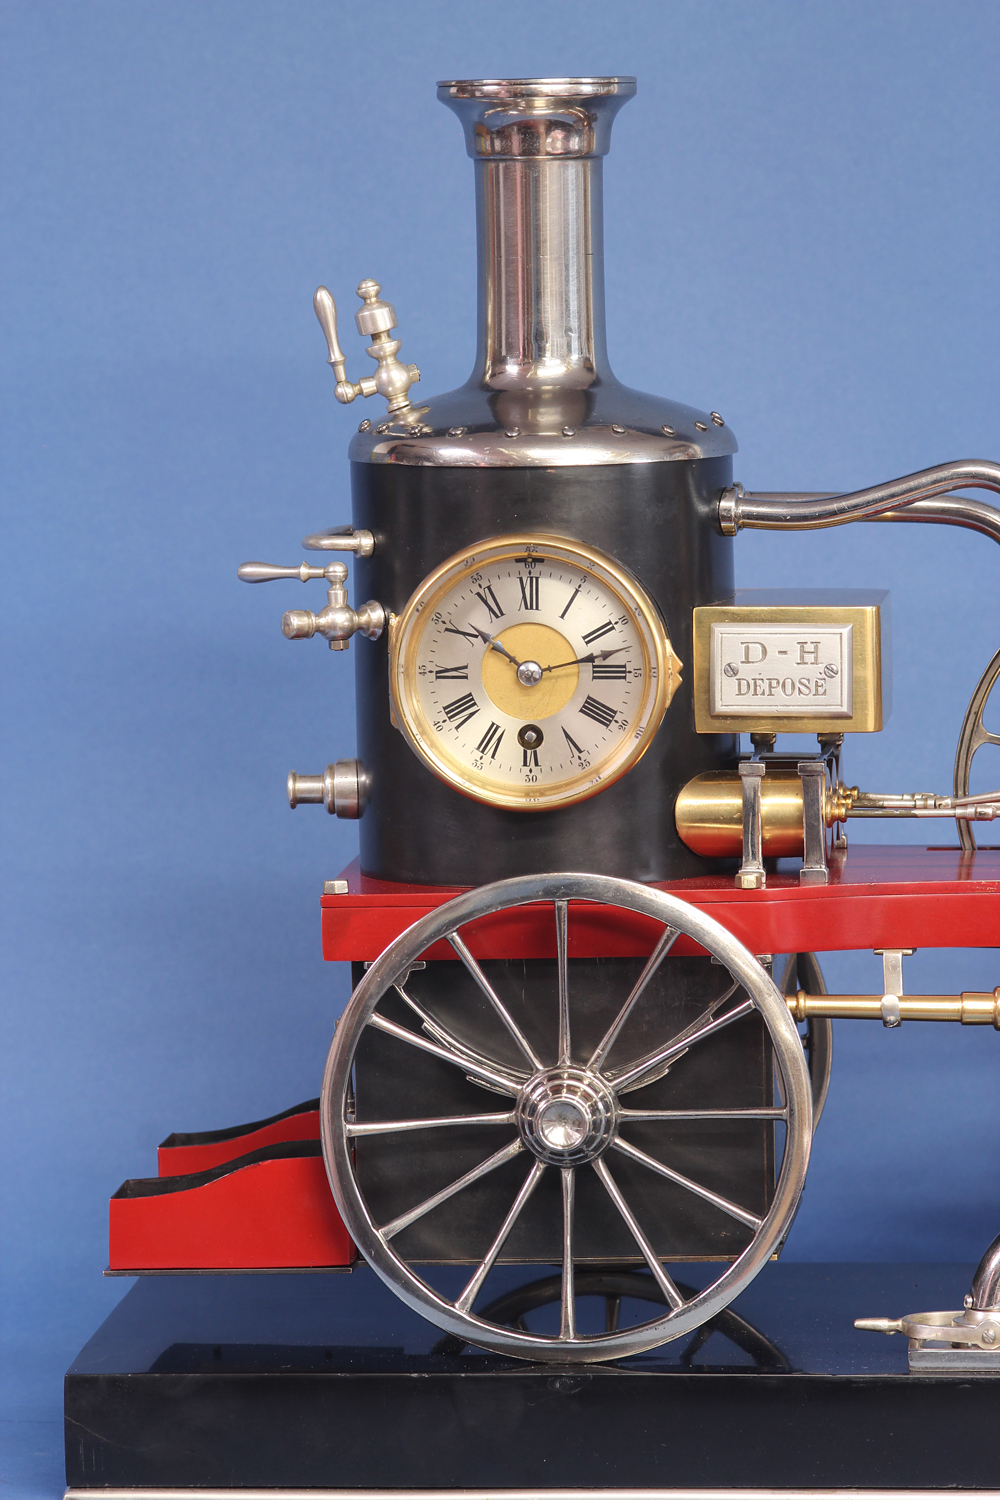 c.1900 French Industrial Fire Engine Clock